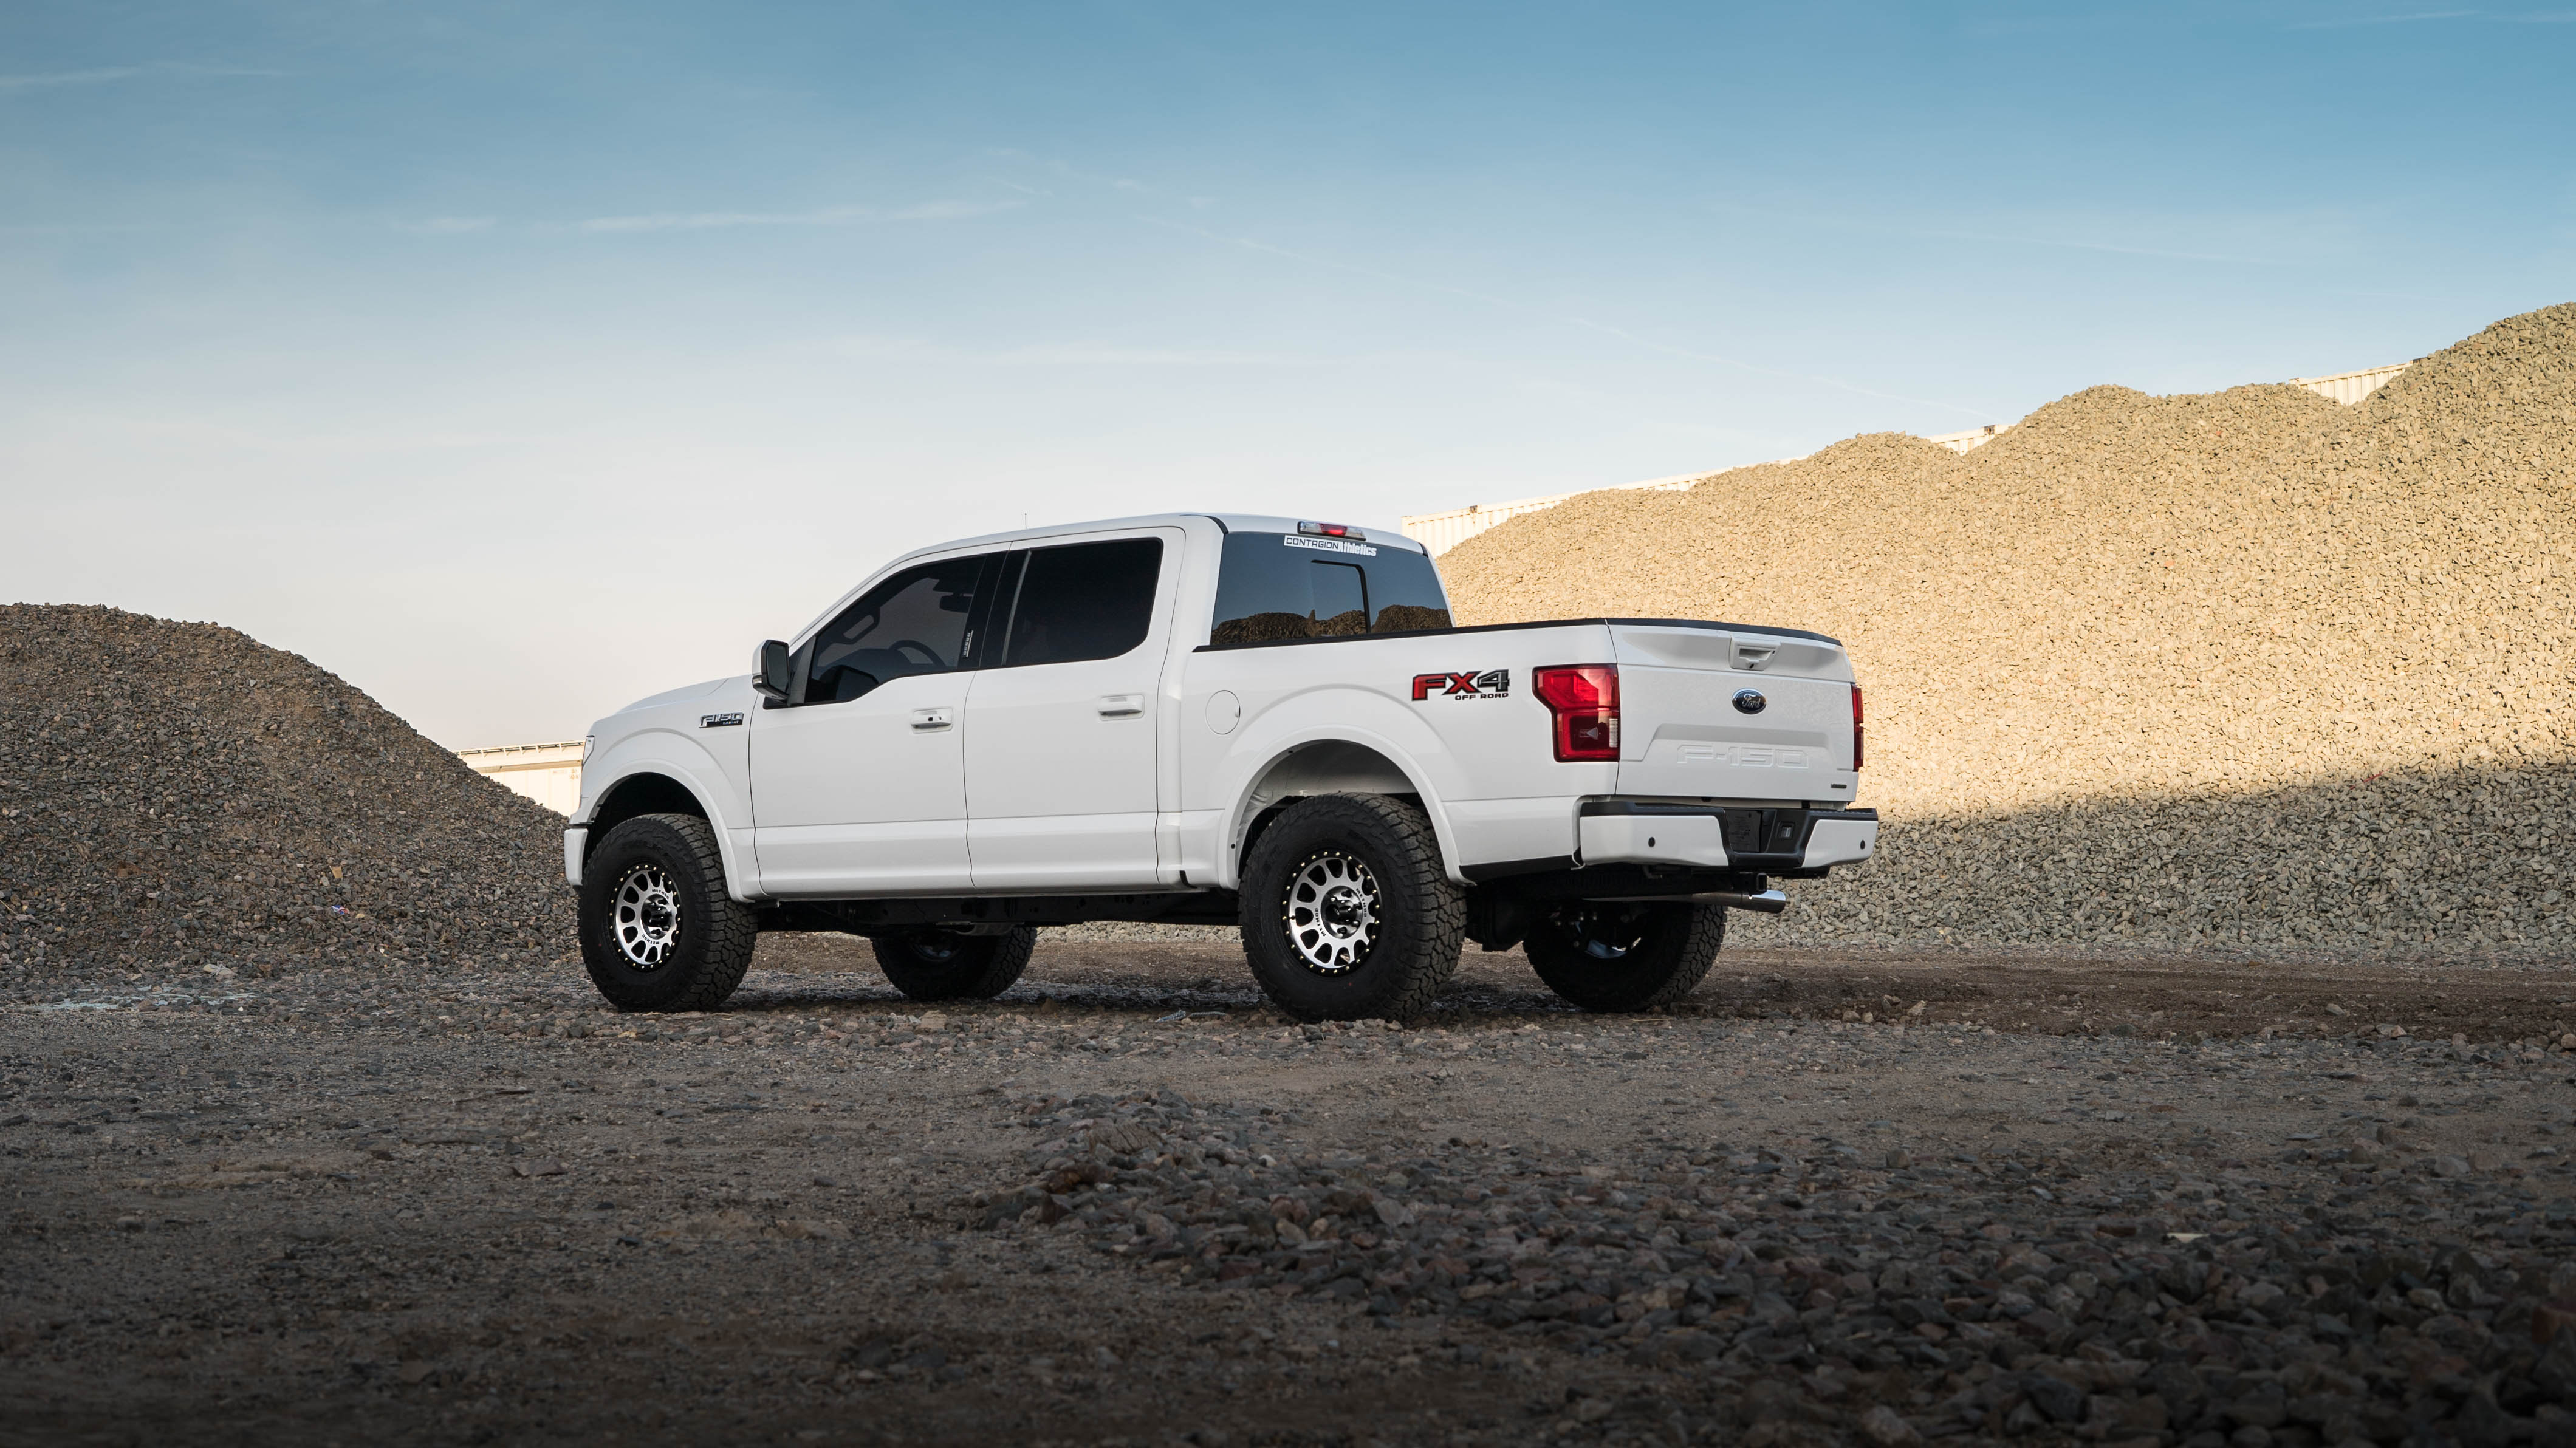 Best Tires For F150 >> 2018 F150 with 2.5-in Leveling kit and 35-in Tires